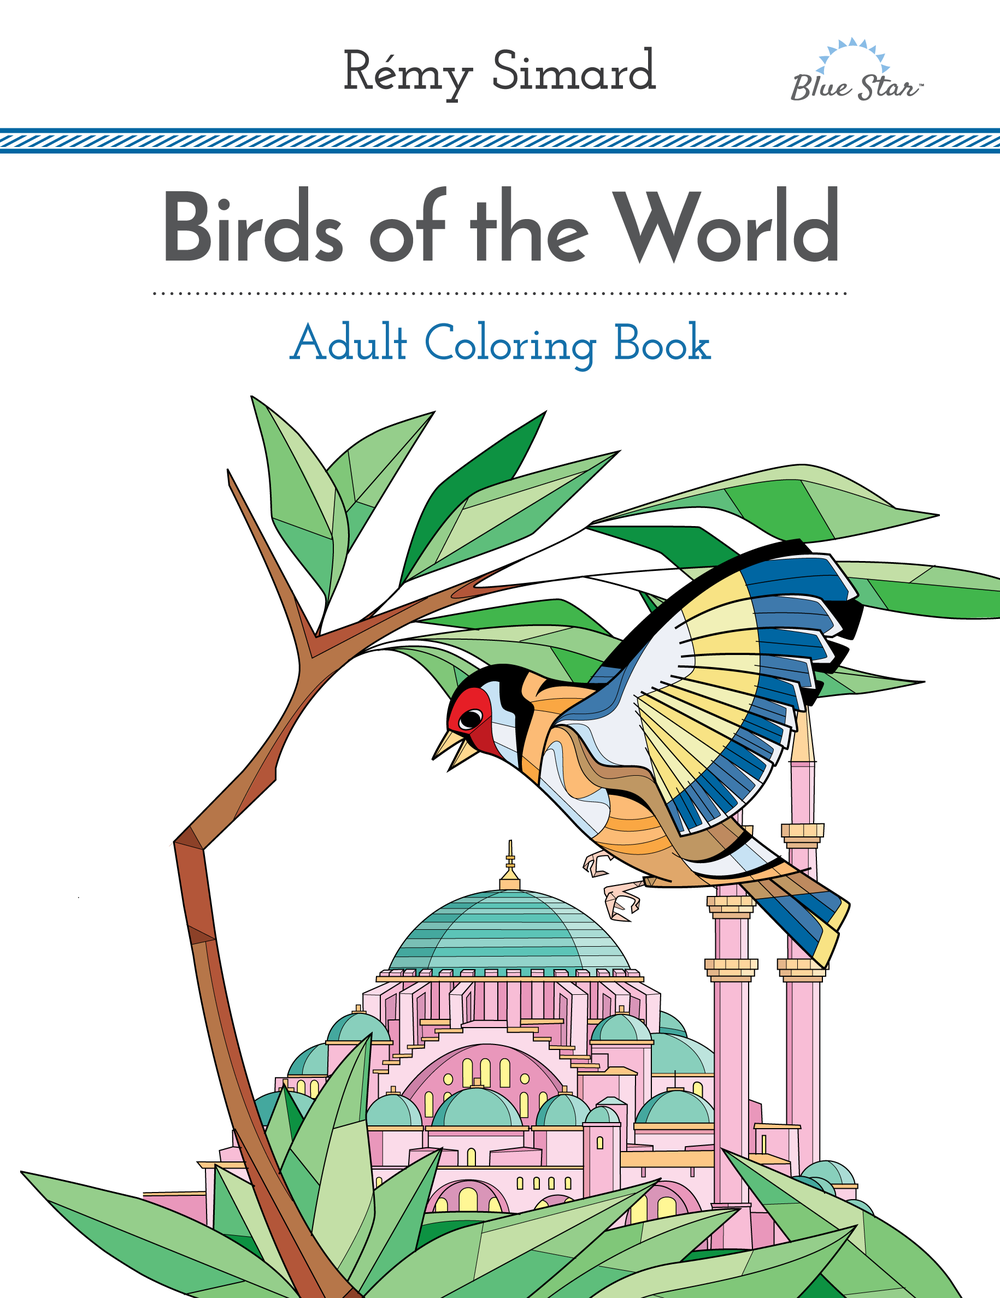 Birds Of The World Adult Coloring Book By Remy Simard